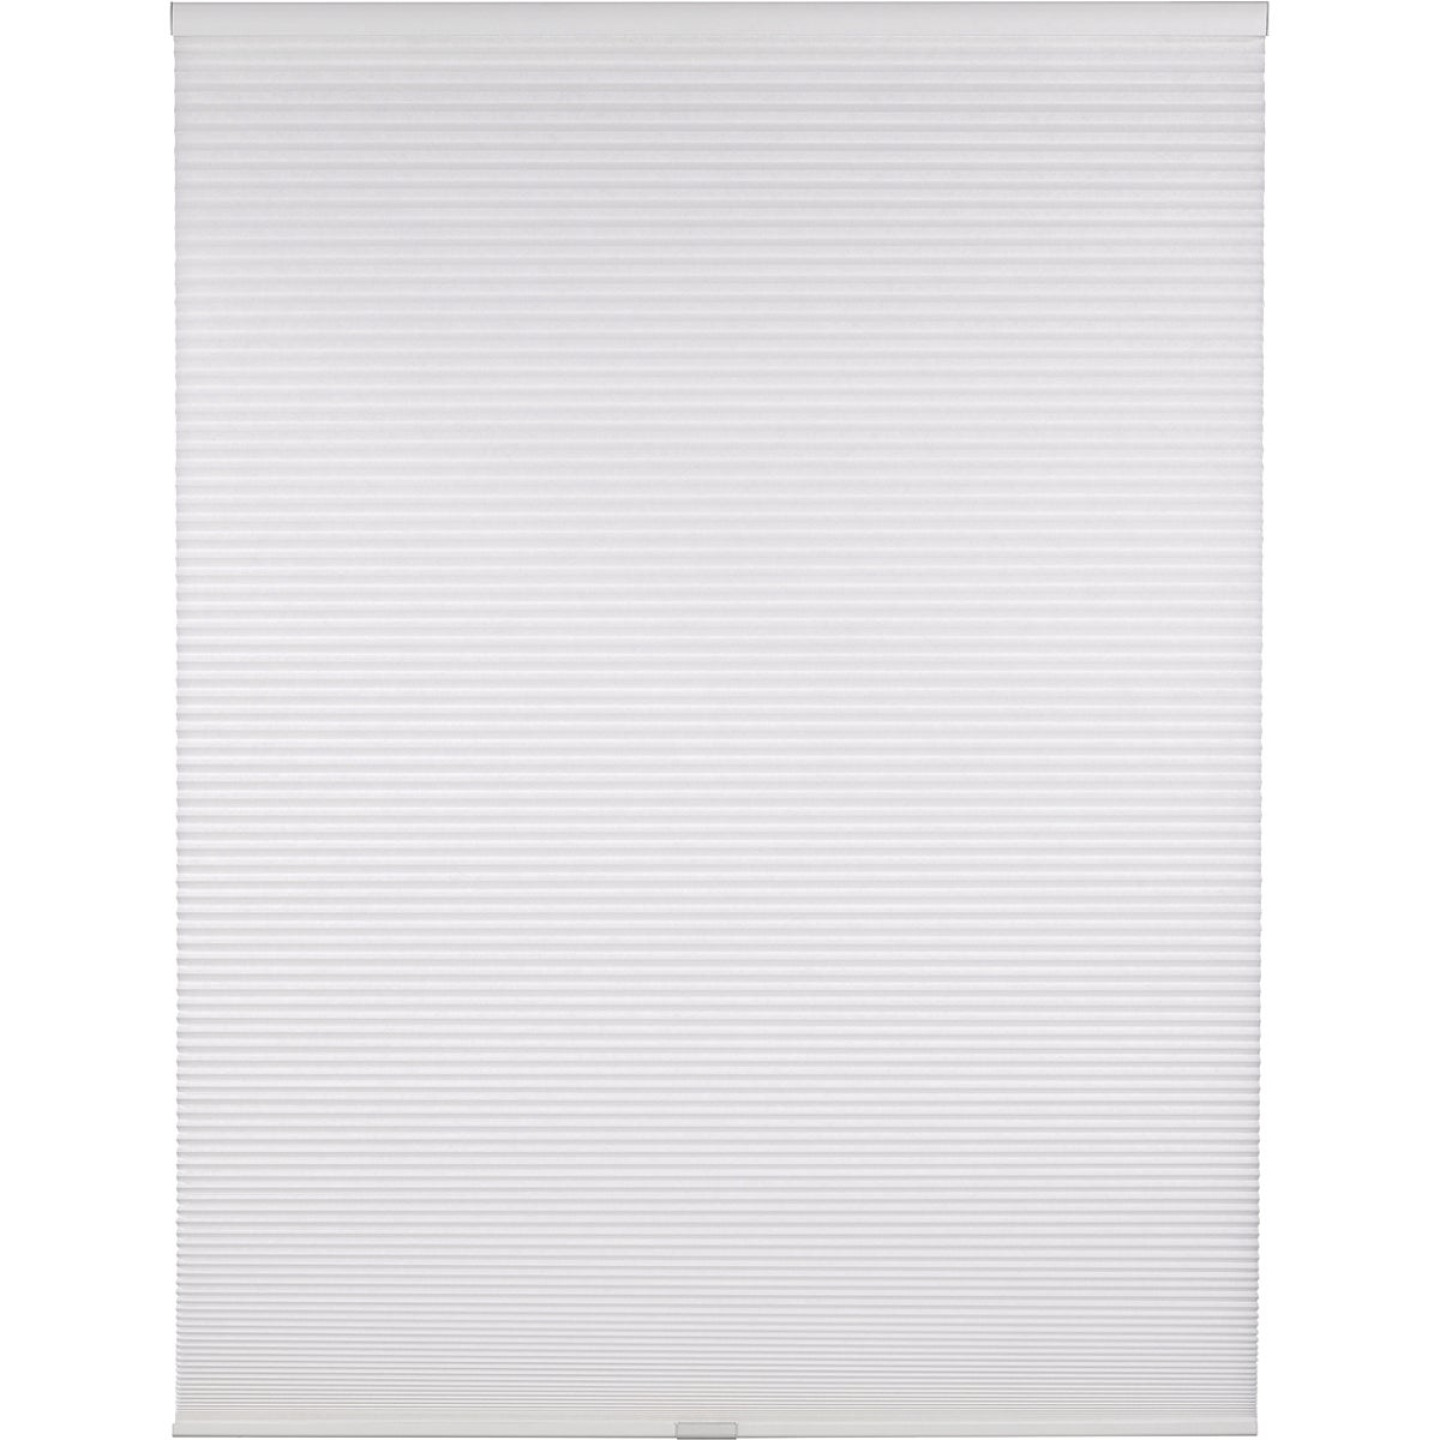 Home Impressions 1 In. Light Filtering Cellular White 27 In. x 72 In. Cordless Shade Image 1